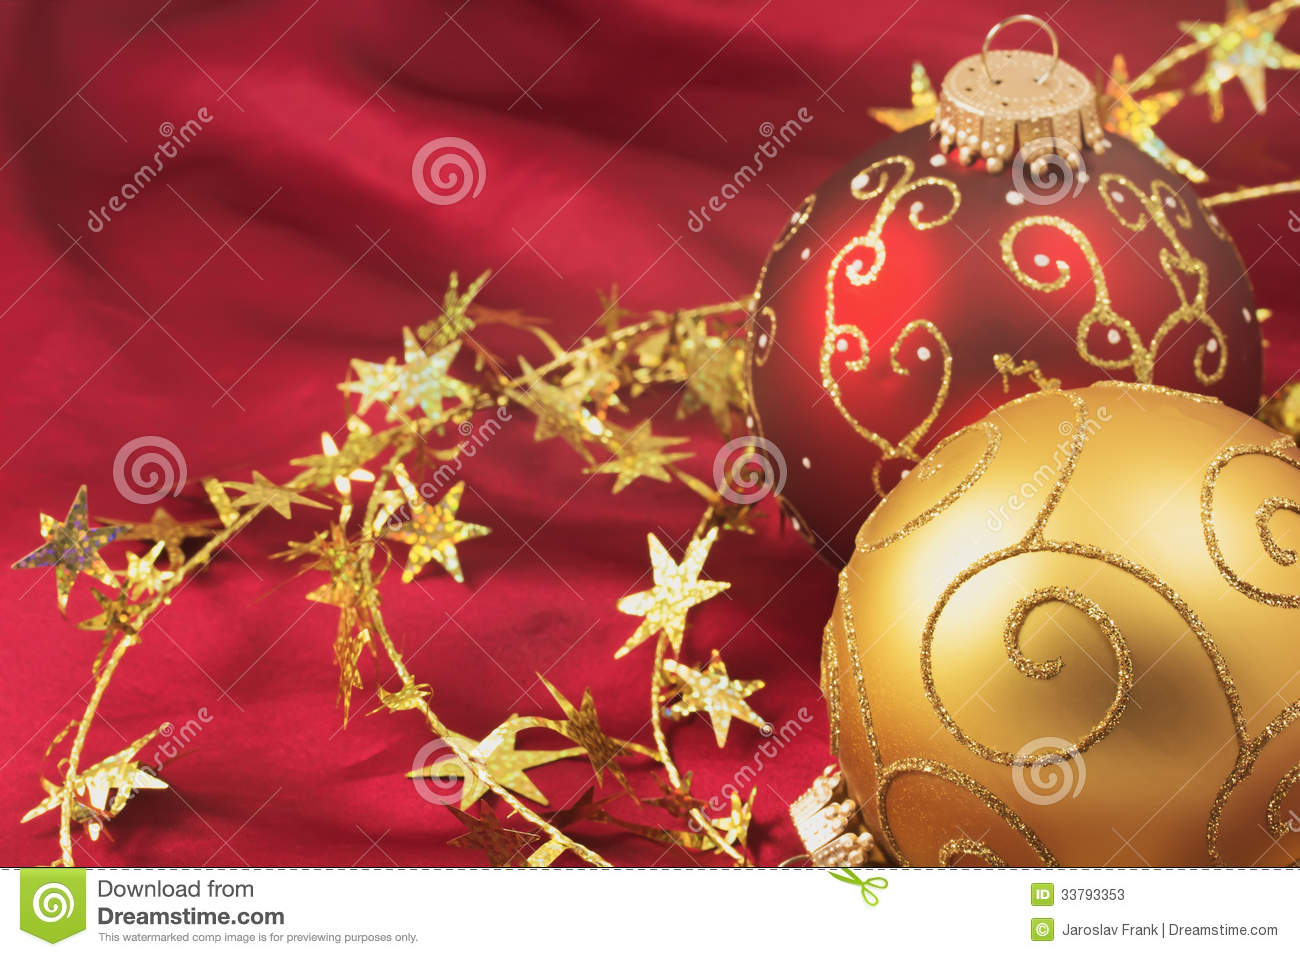 Free Illustration Background Christmas Red Gold: Red And Gold Christmas Bulbs On A Red Background Stock